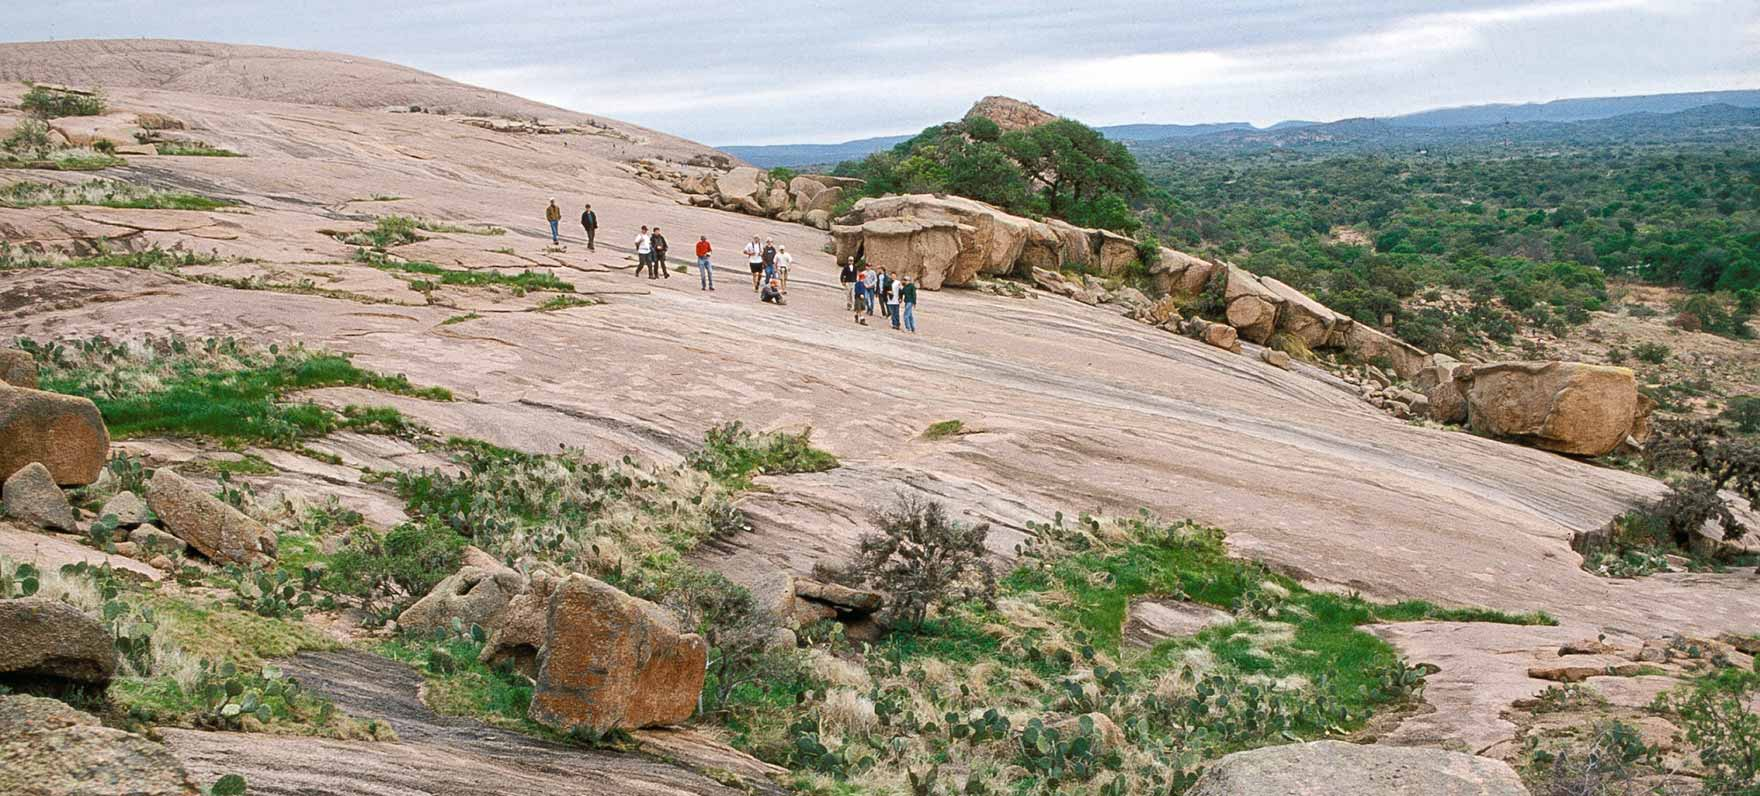 Enchanted Rock State Natural Area Texas Parks Wildlife